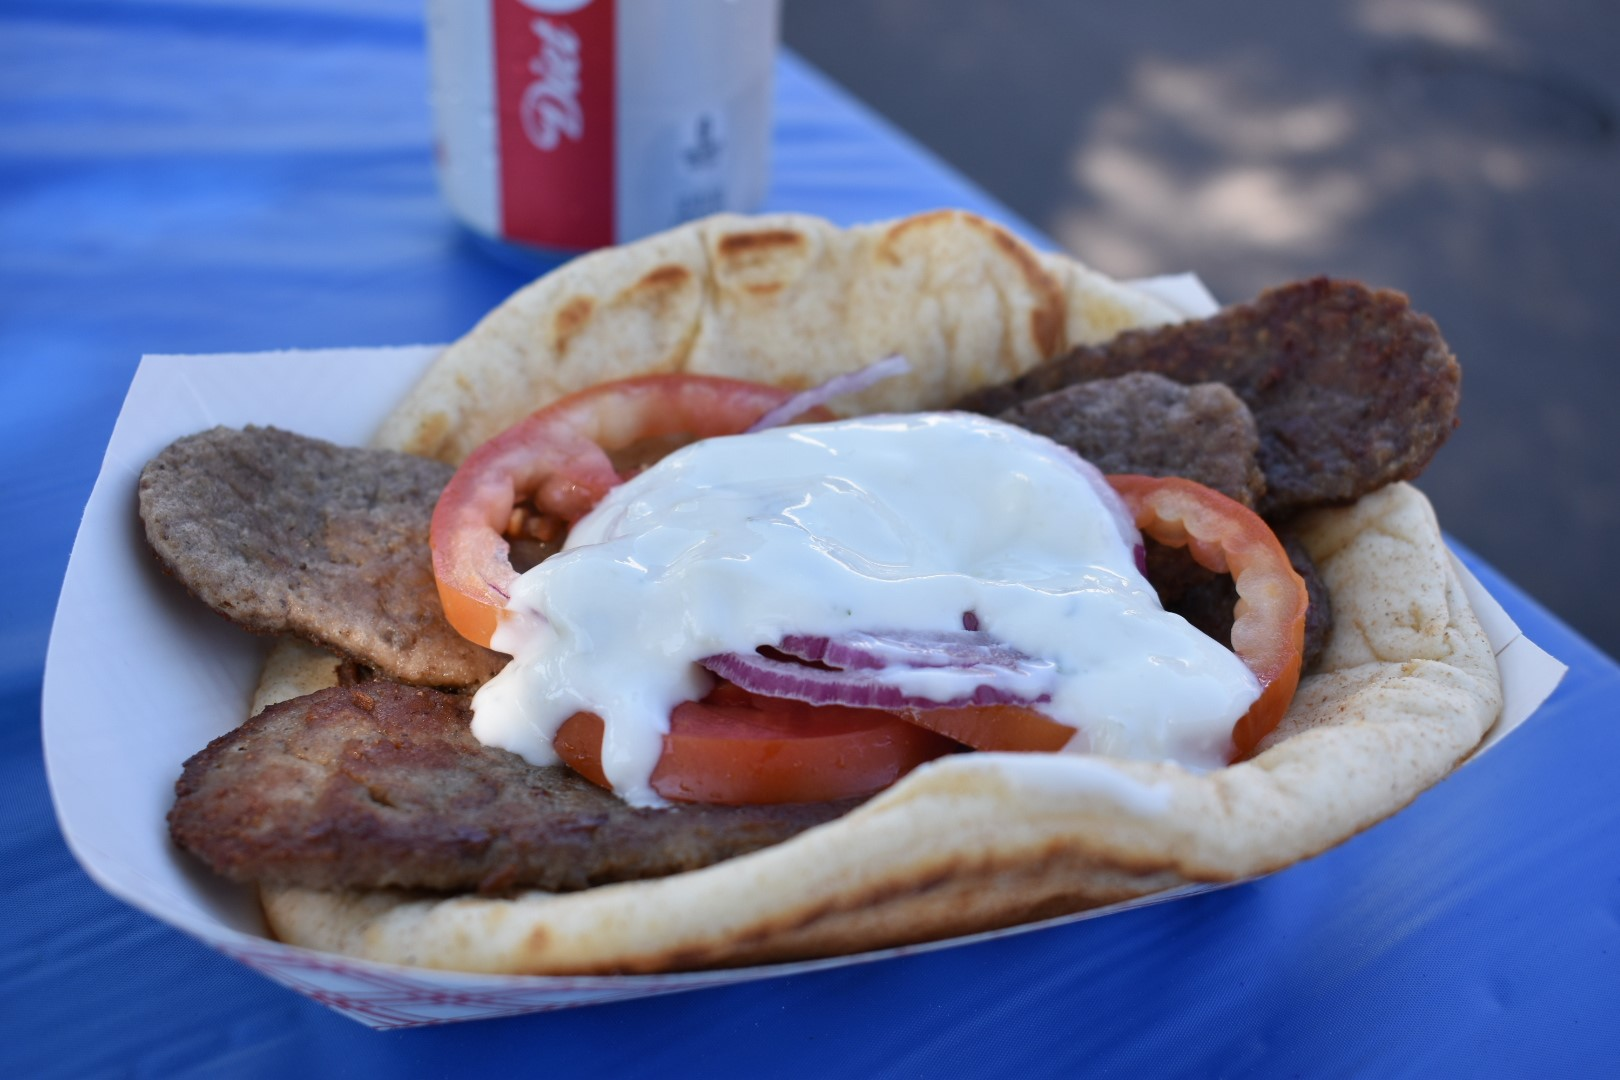 This gyro was among the many culinary offerings at the San Juan Capistrano Greek Festival on Saturday, Sept. 29. Photo: Alex Groves